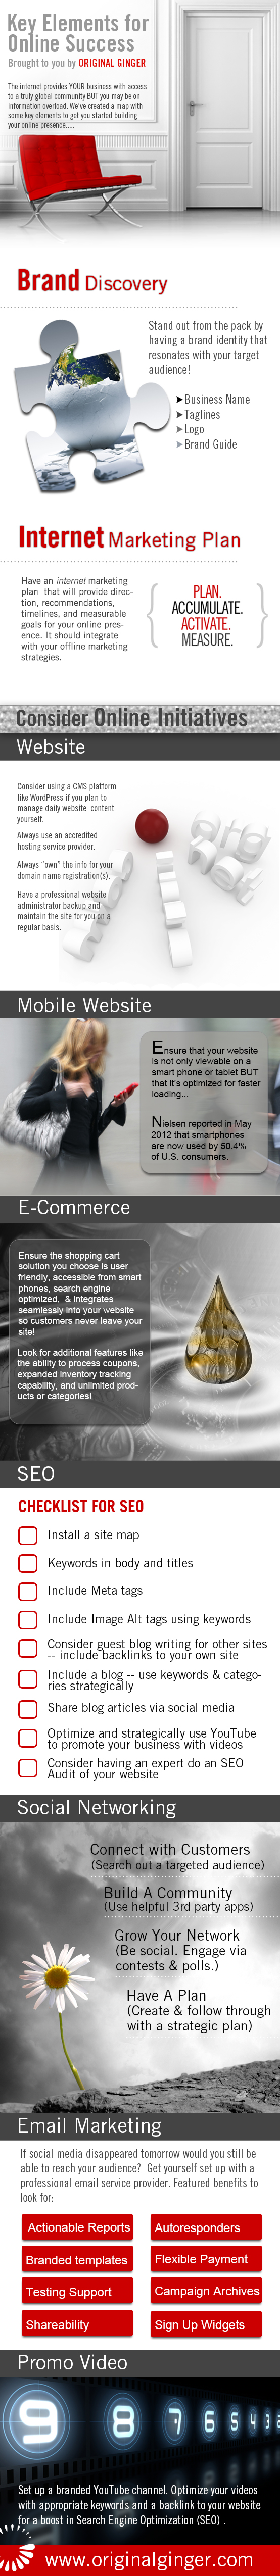 Online Success Guide-Infographic